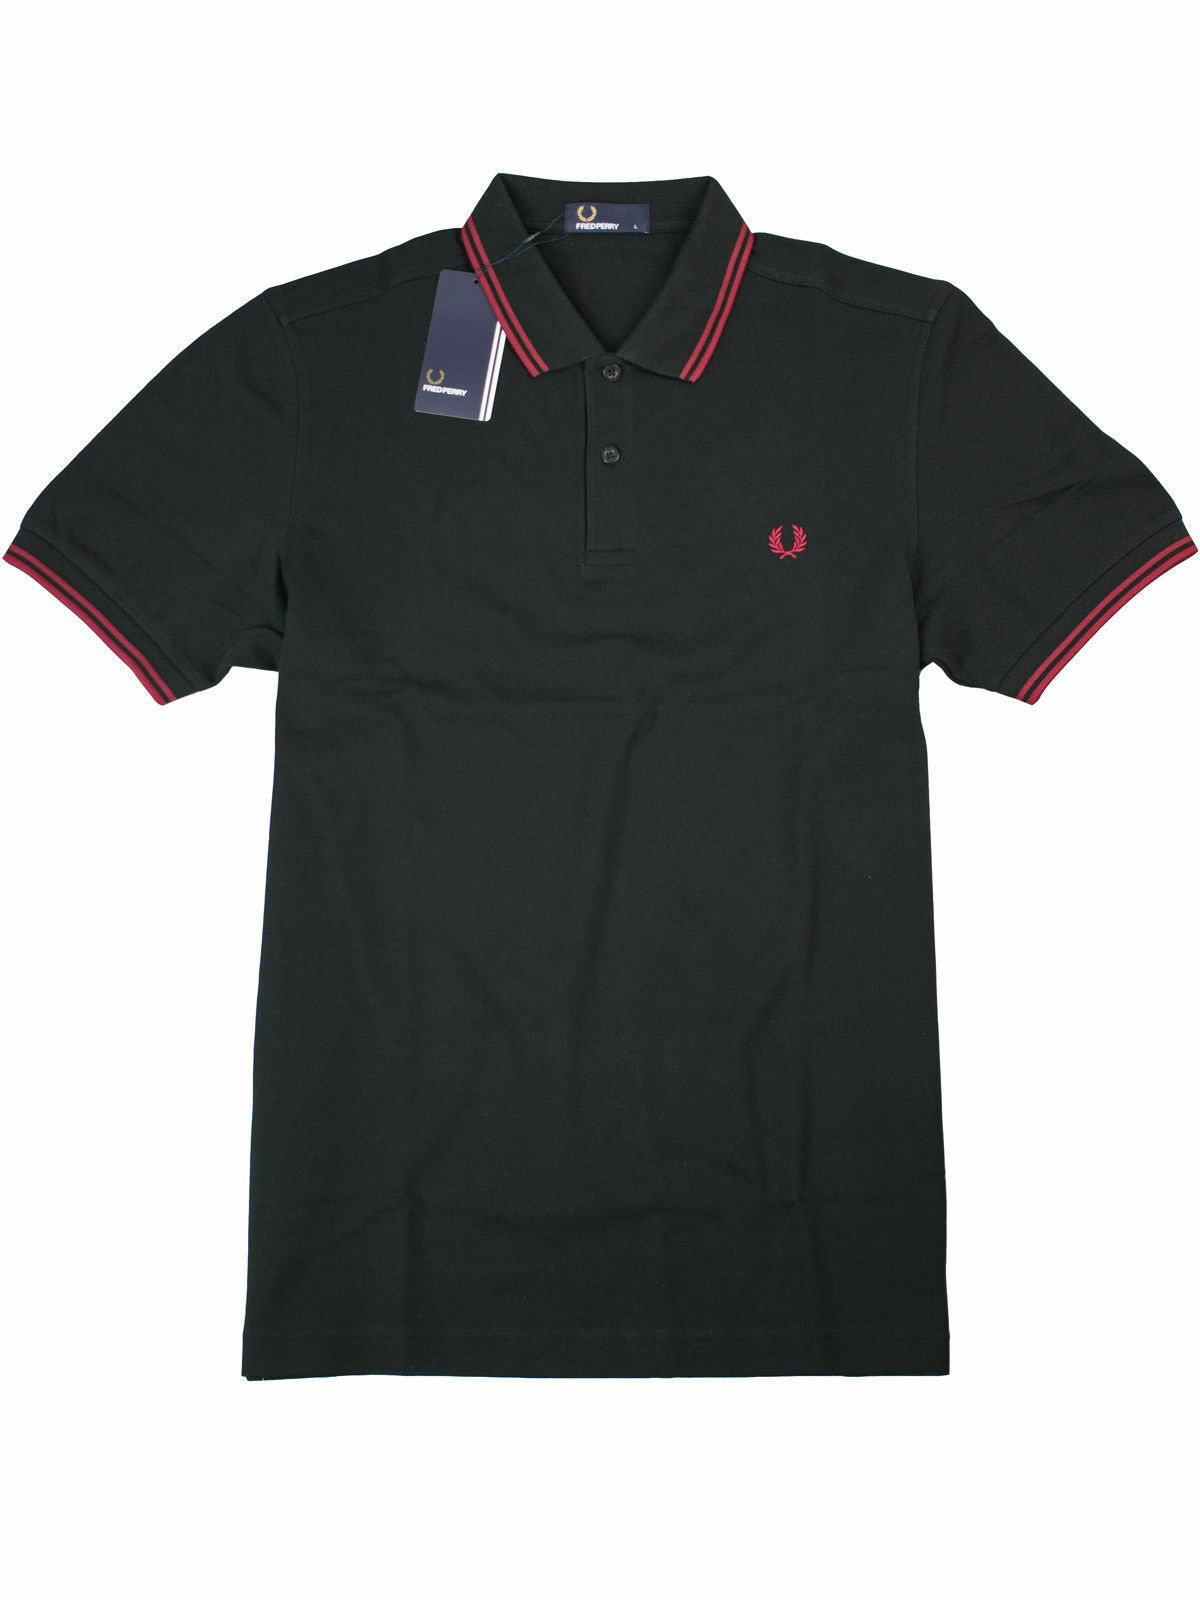 Fred Perry Polo Shirt Poloshirt M3600 F24 black   red Piquee  7339